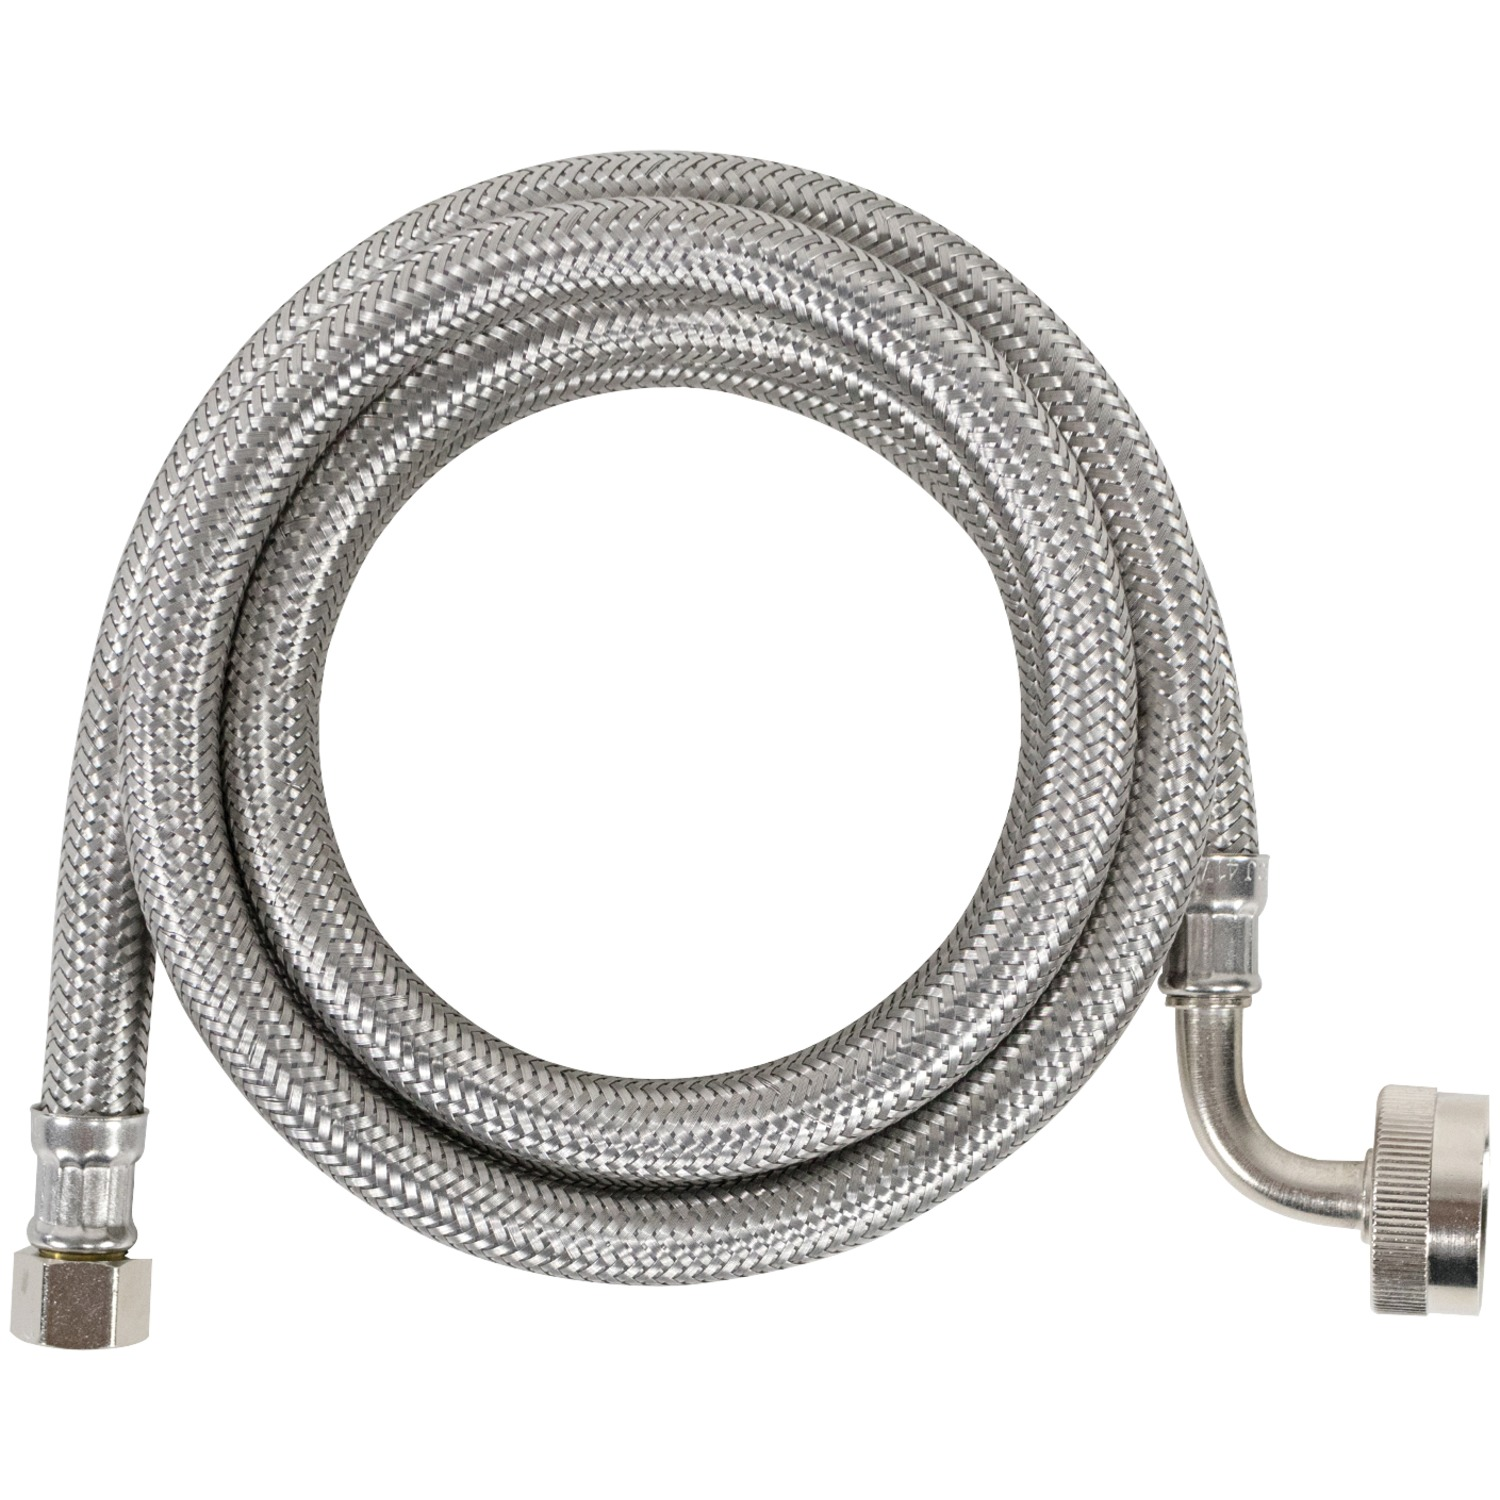 Certified Appliance DW60SSL Braided Stainless Steel Dishwasher Connector with Whirlpool Elbow (5')